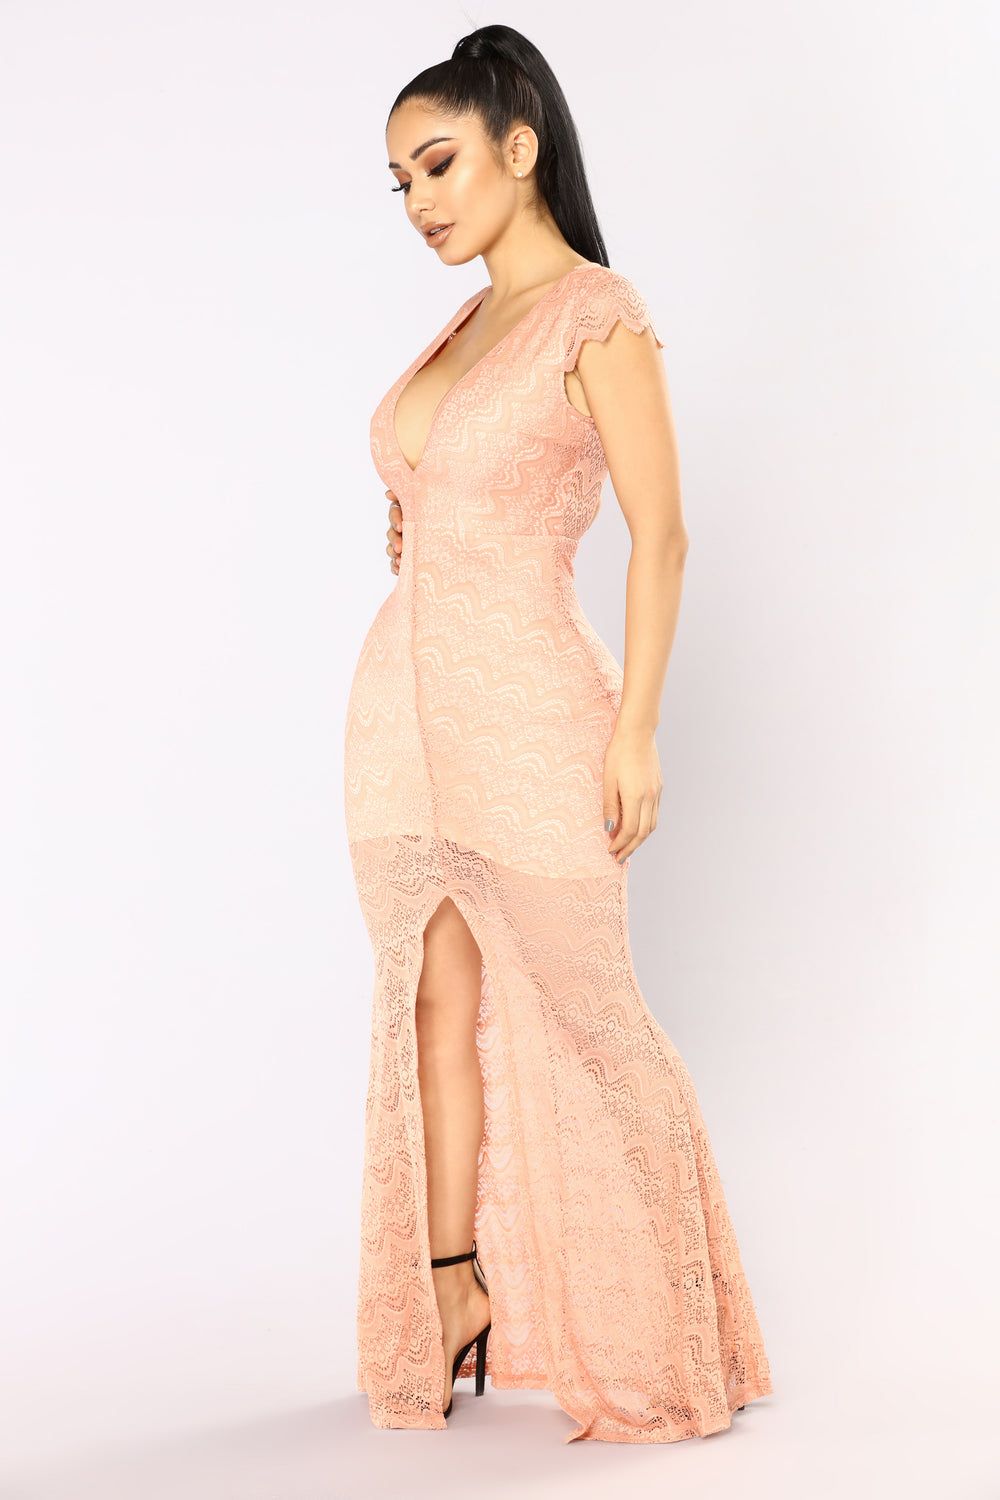 Get With You Maxi Dress - Mauve